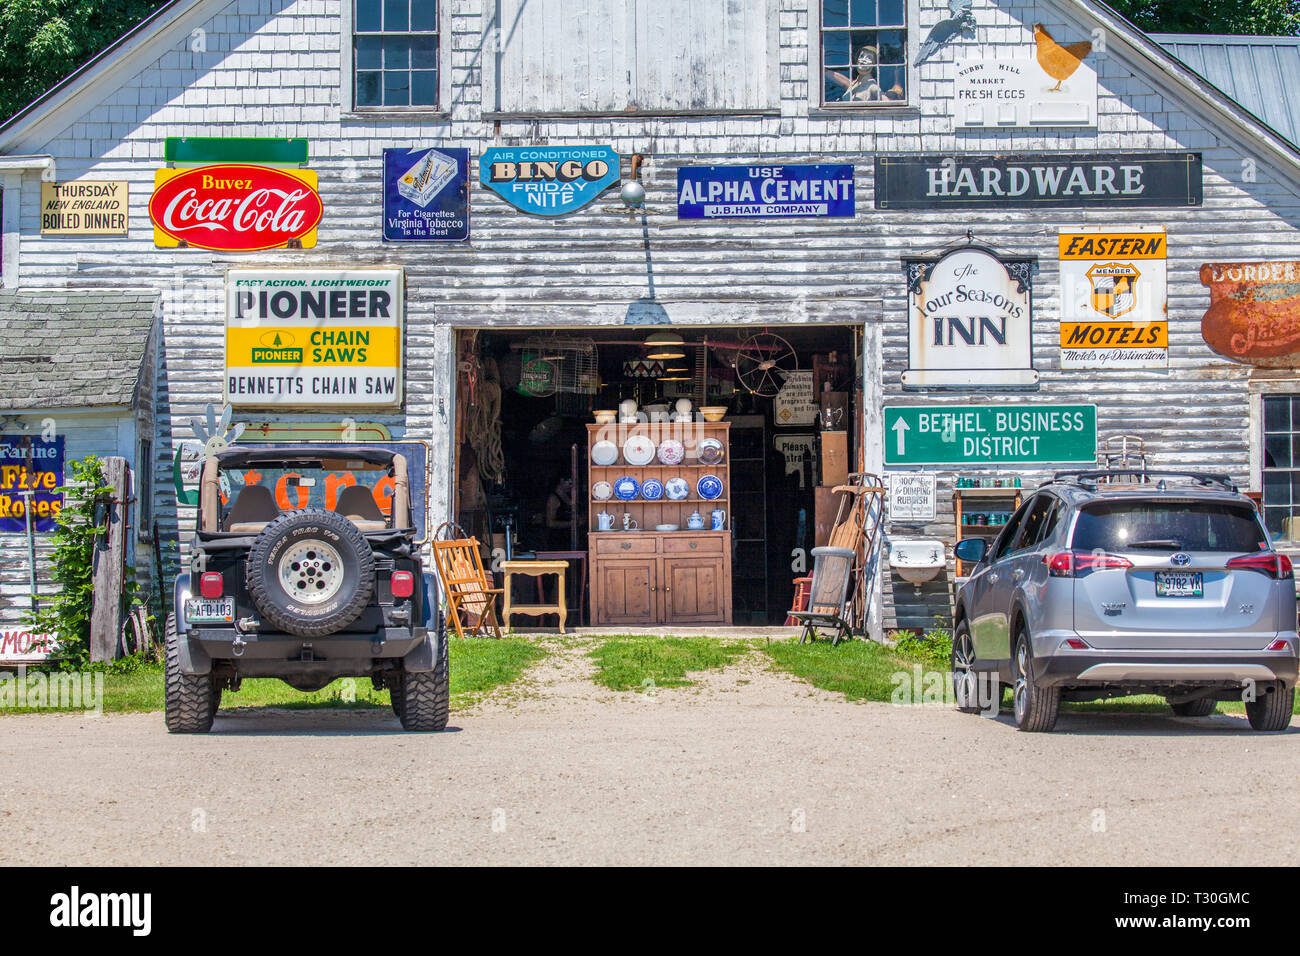 Signs and antiques for sale at the Steam Mill Antiques and Collectibles shop on route 2, Big Dipper Trail, in Bethel, Maine, USA. - Stock Image